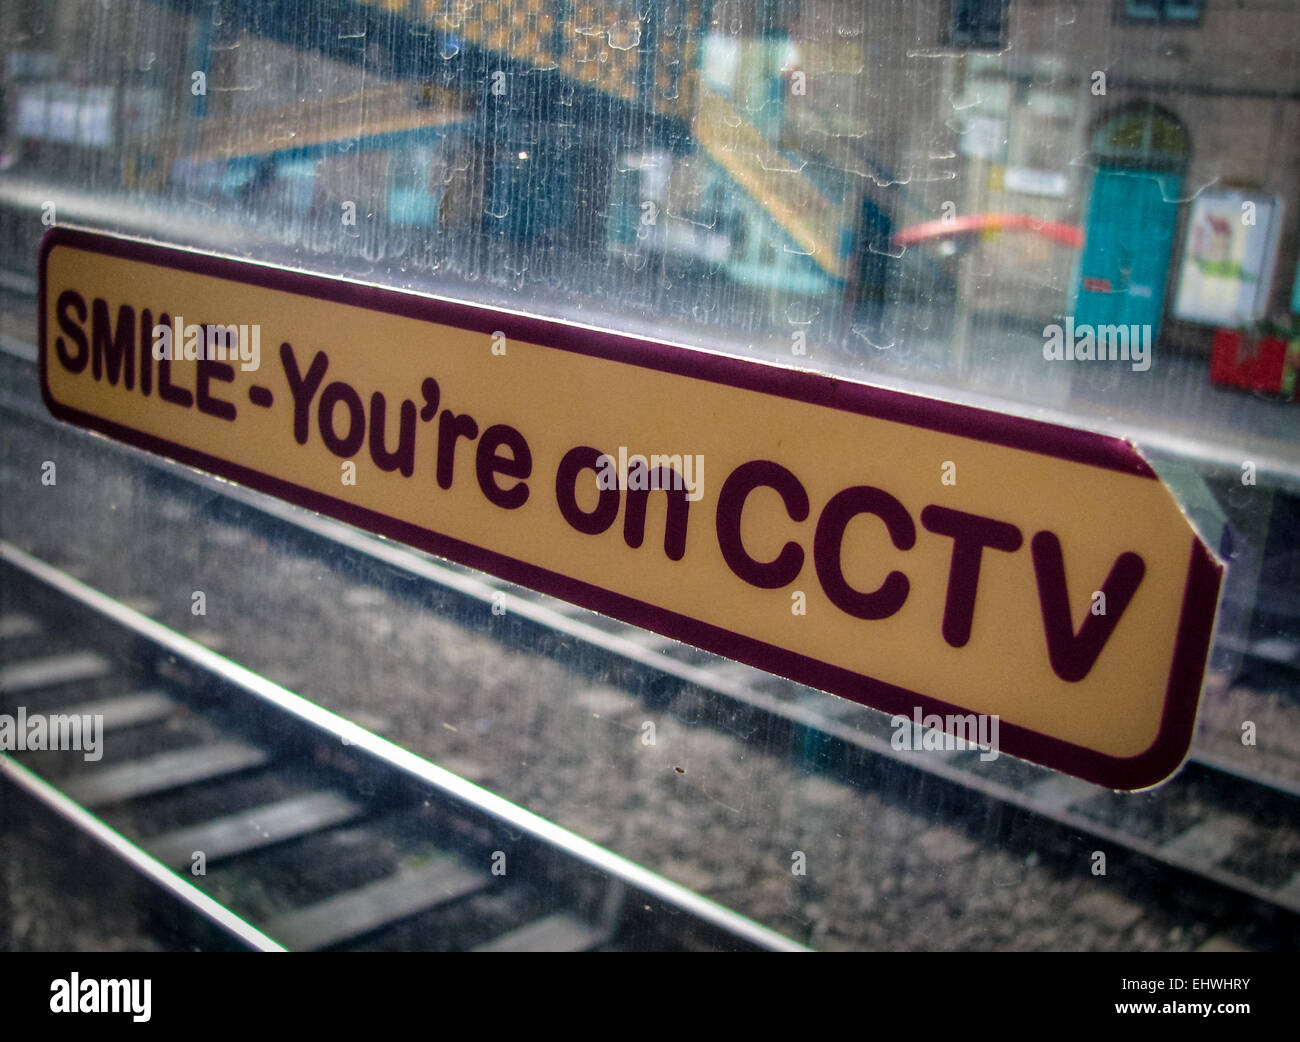 CCTV Sticker Sign On A Train Window In A Station - Stock Image